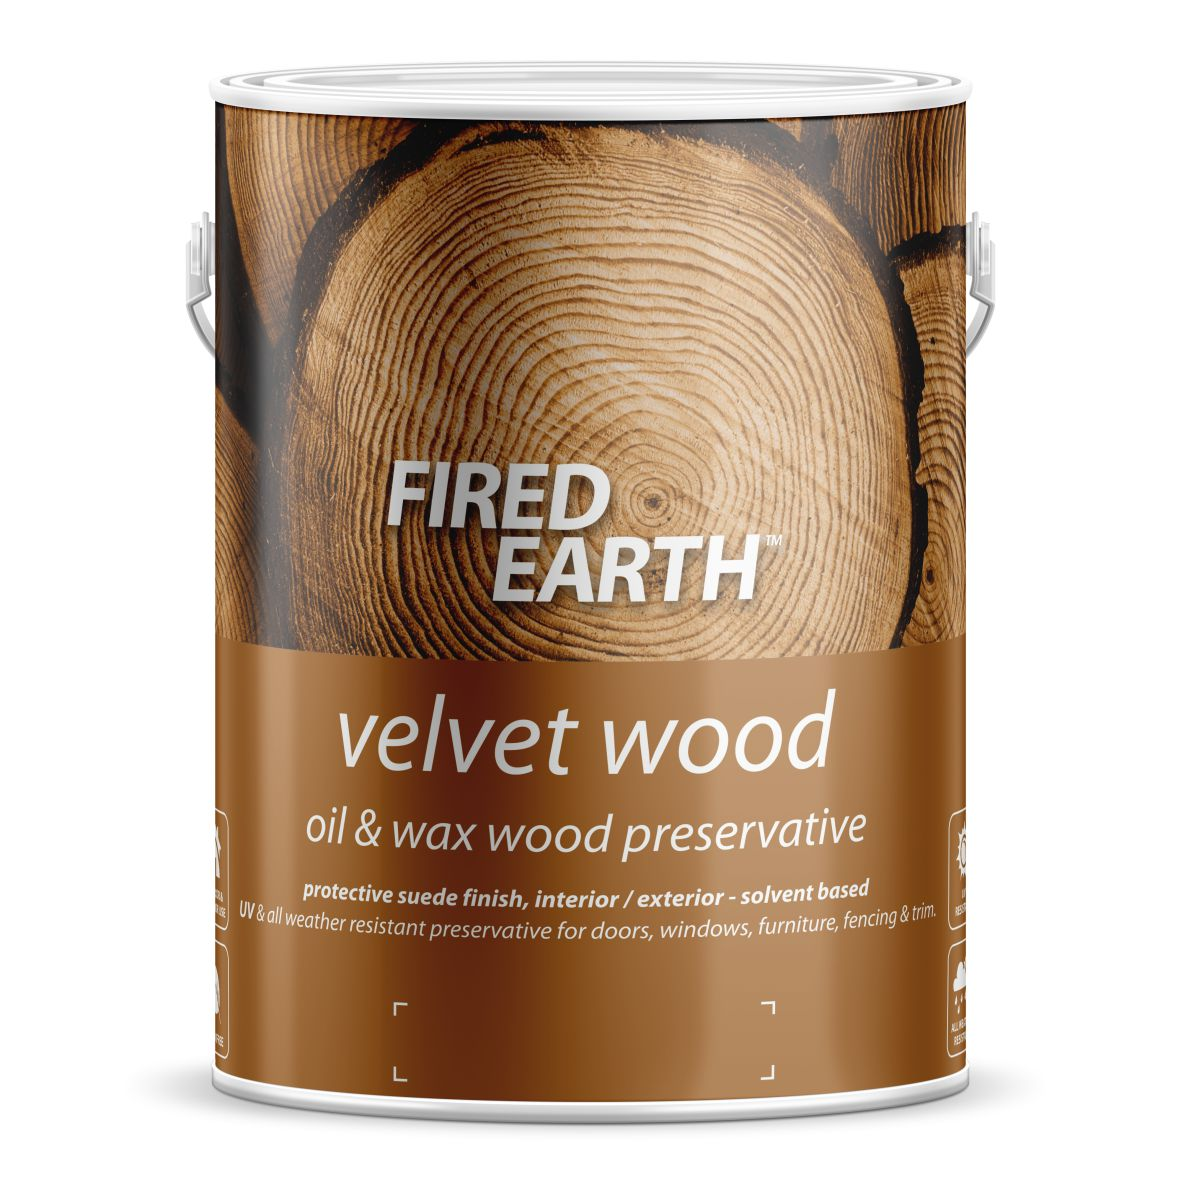 FE Wood Velvet Oil & Wax.jpg